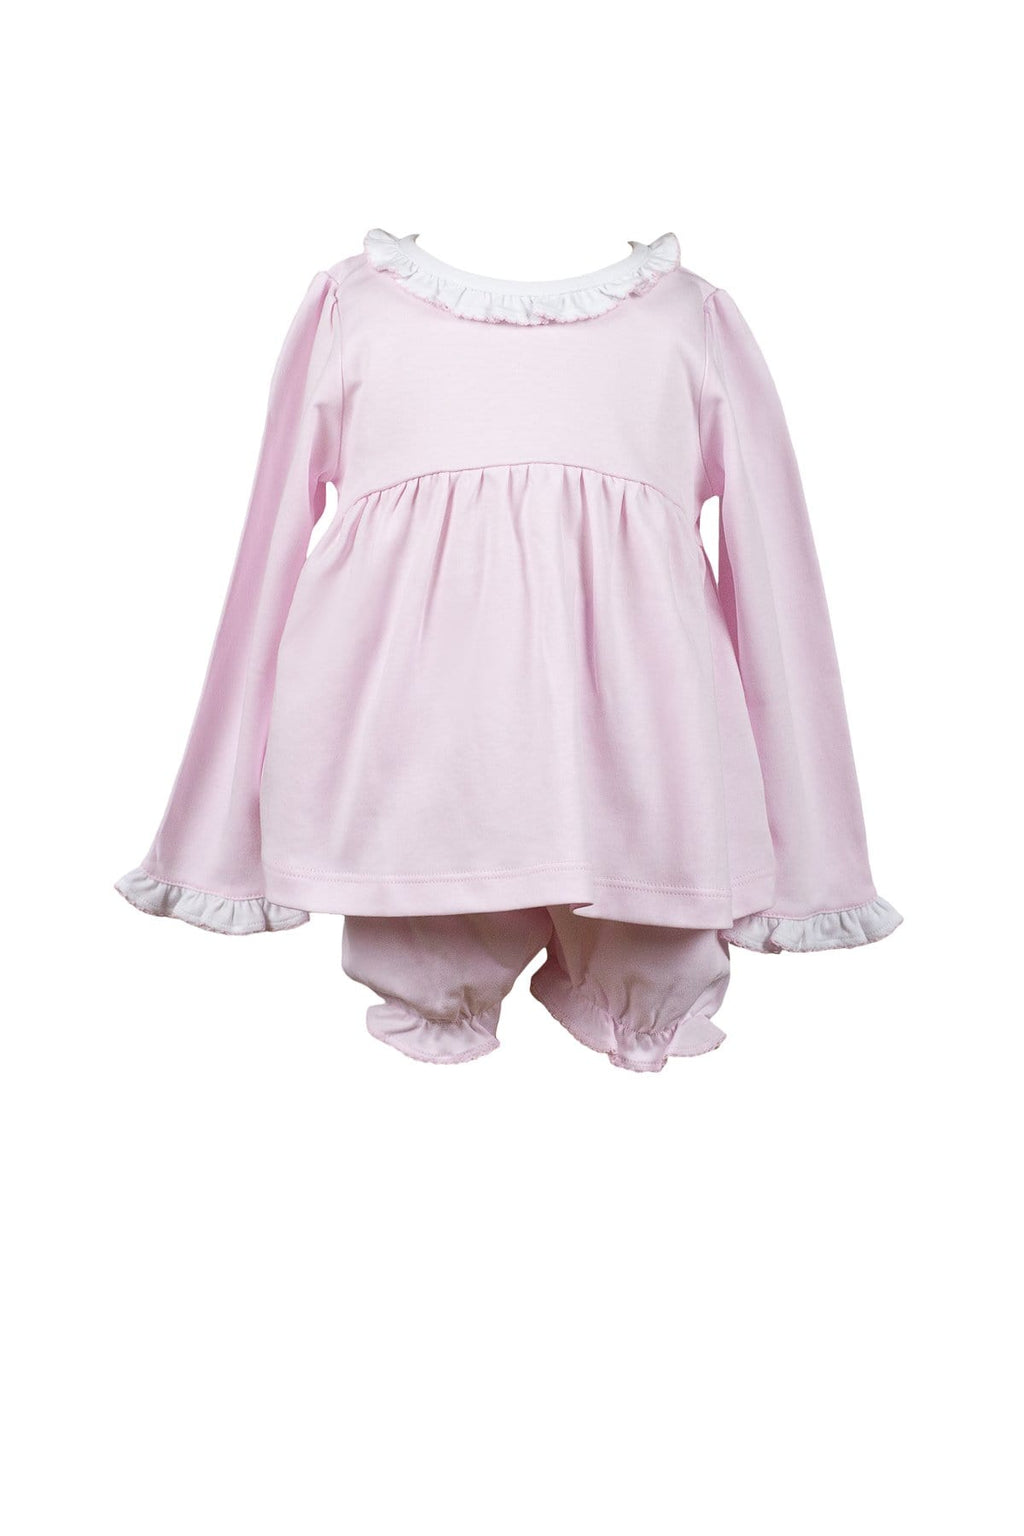 The Proper Peony Parkside Pink Bloomer Set